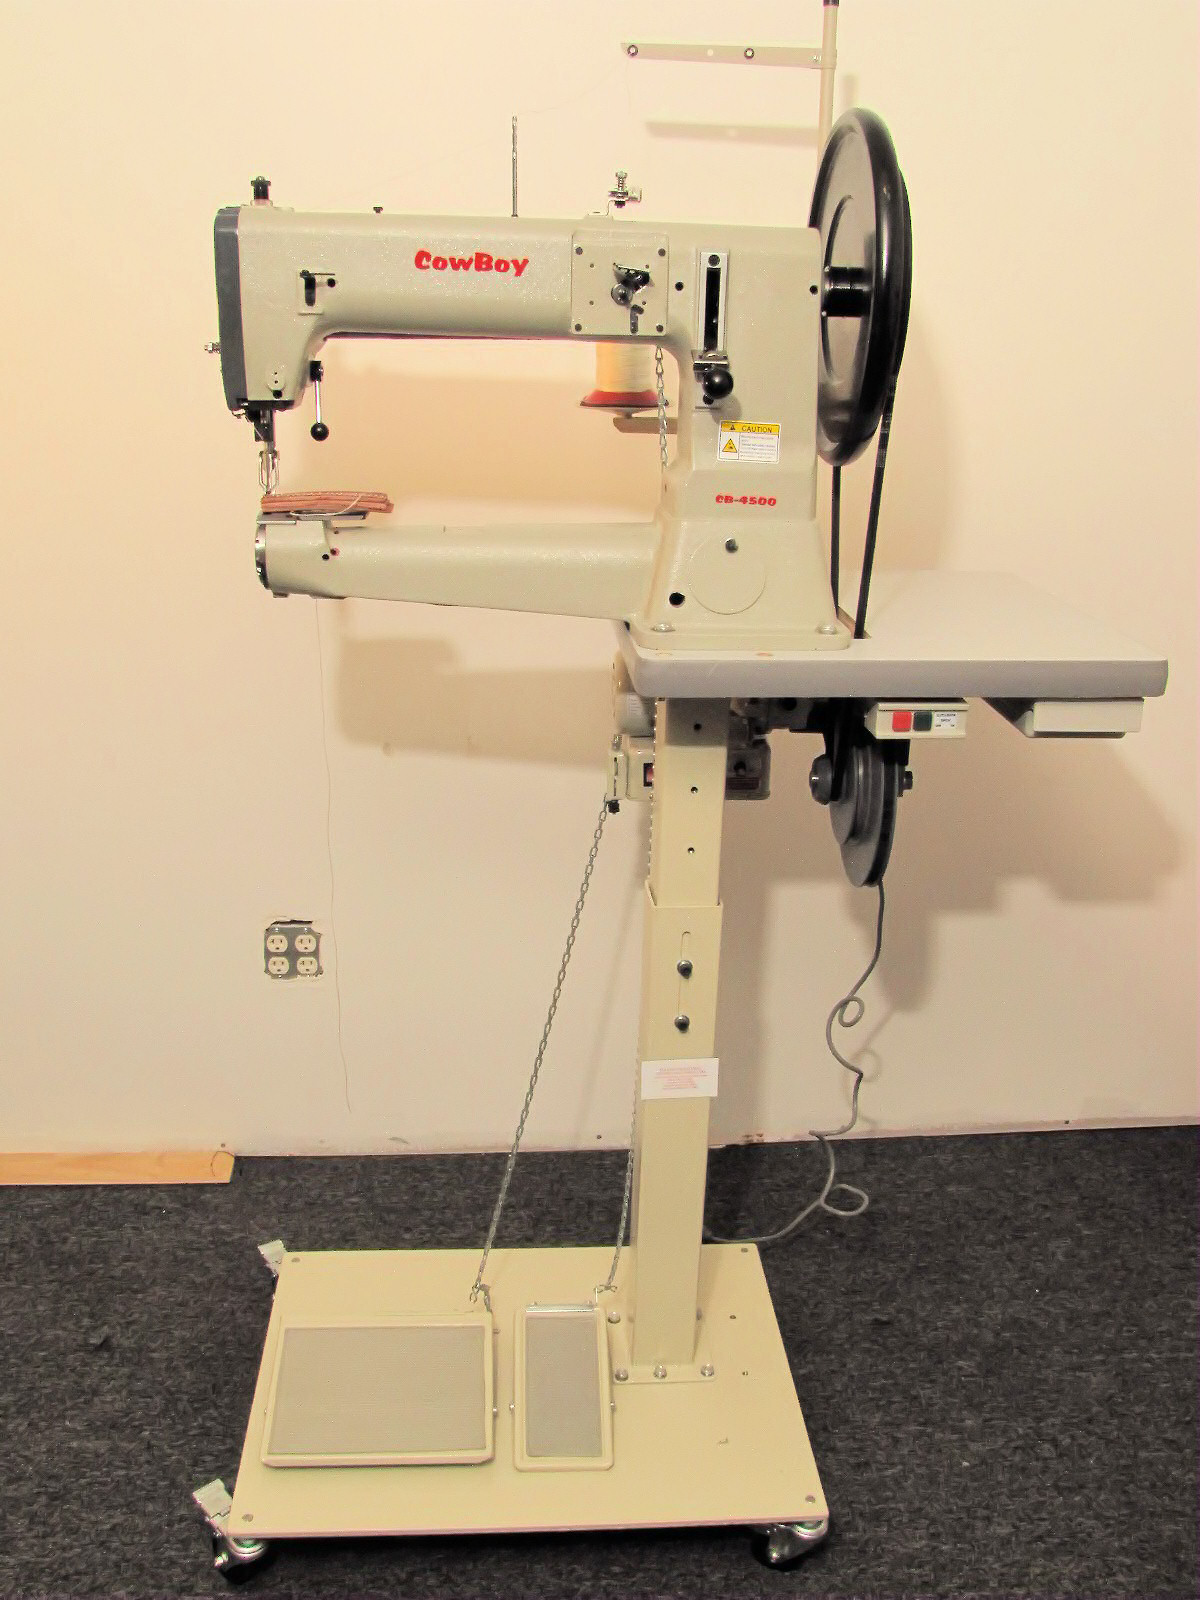 Toledo Industrial Sewing Machines Cowboy Leather Sewing Machines